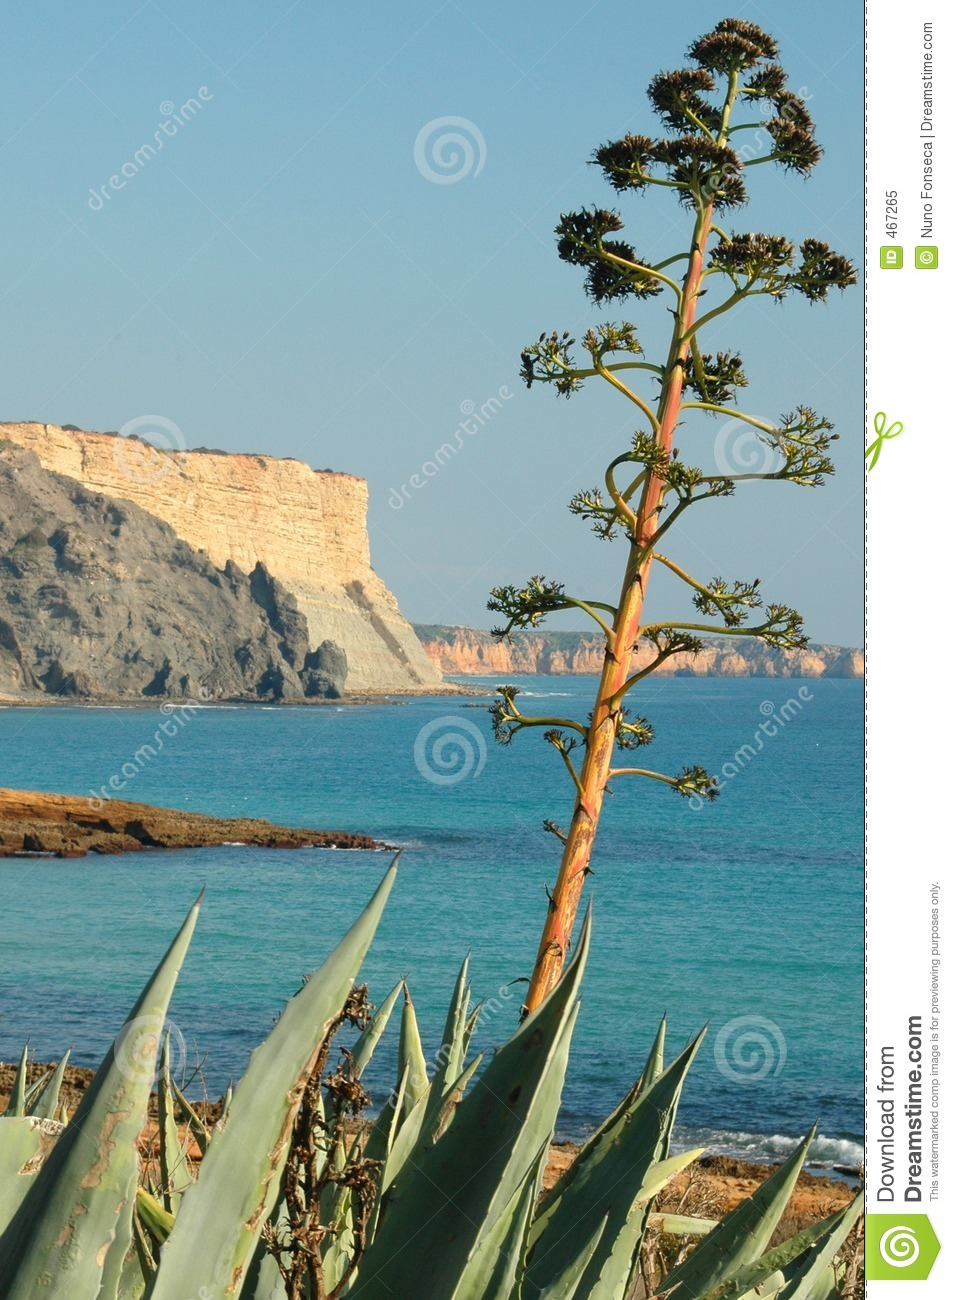 Download Algarve tree stock image. Image of nature, tree, rock, ocean - 467265